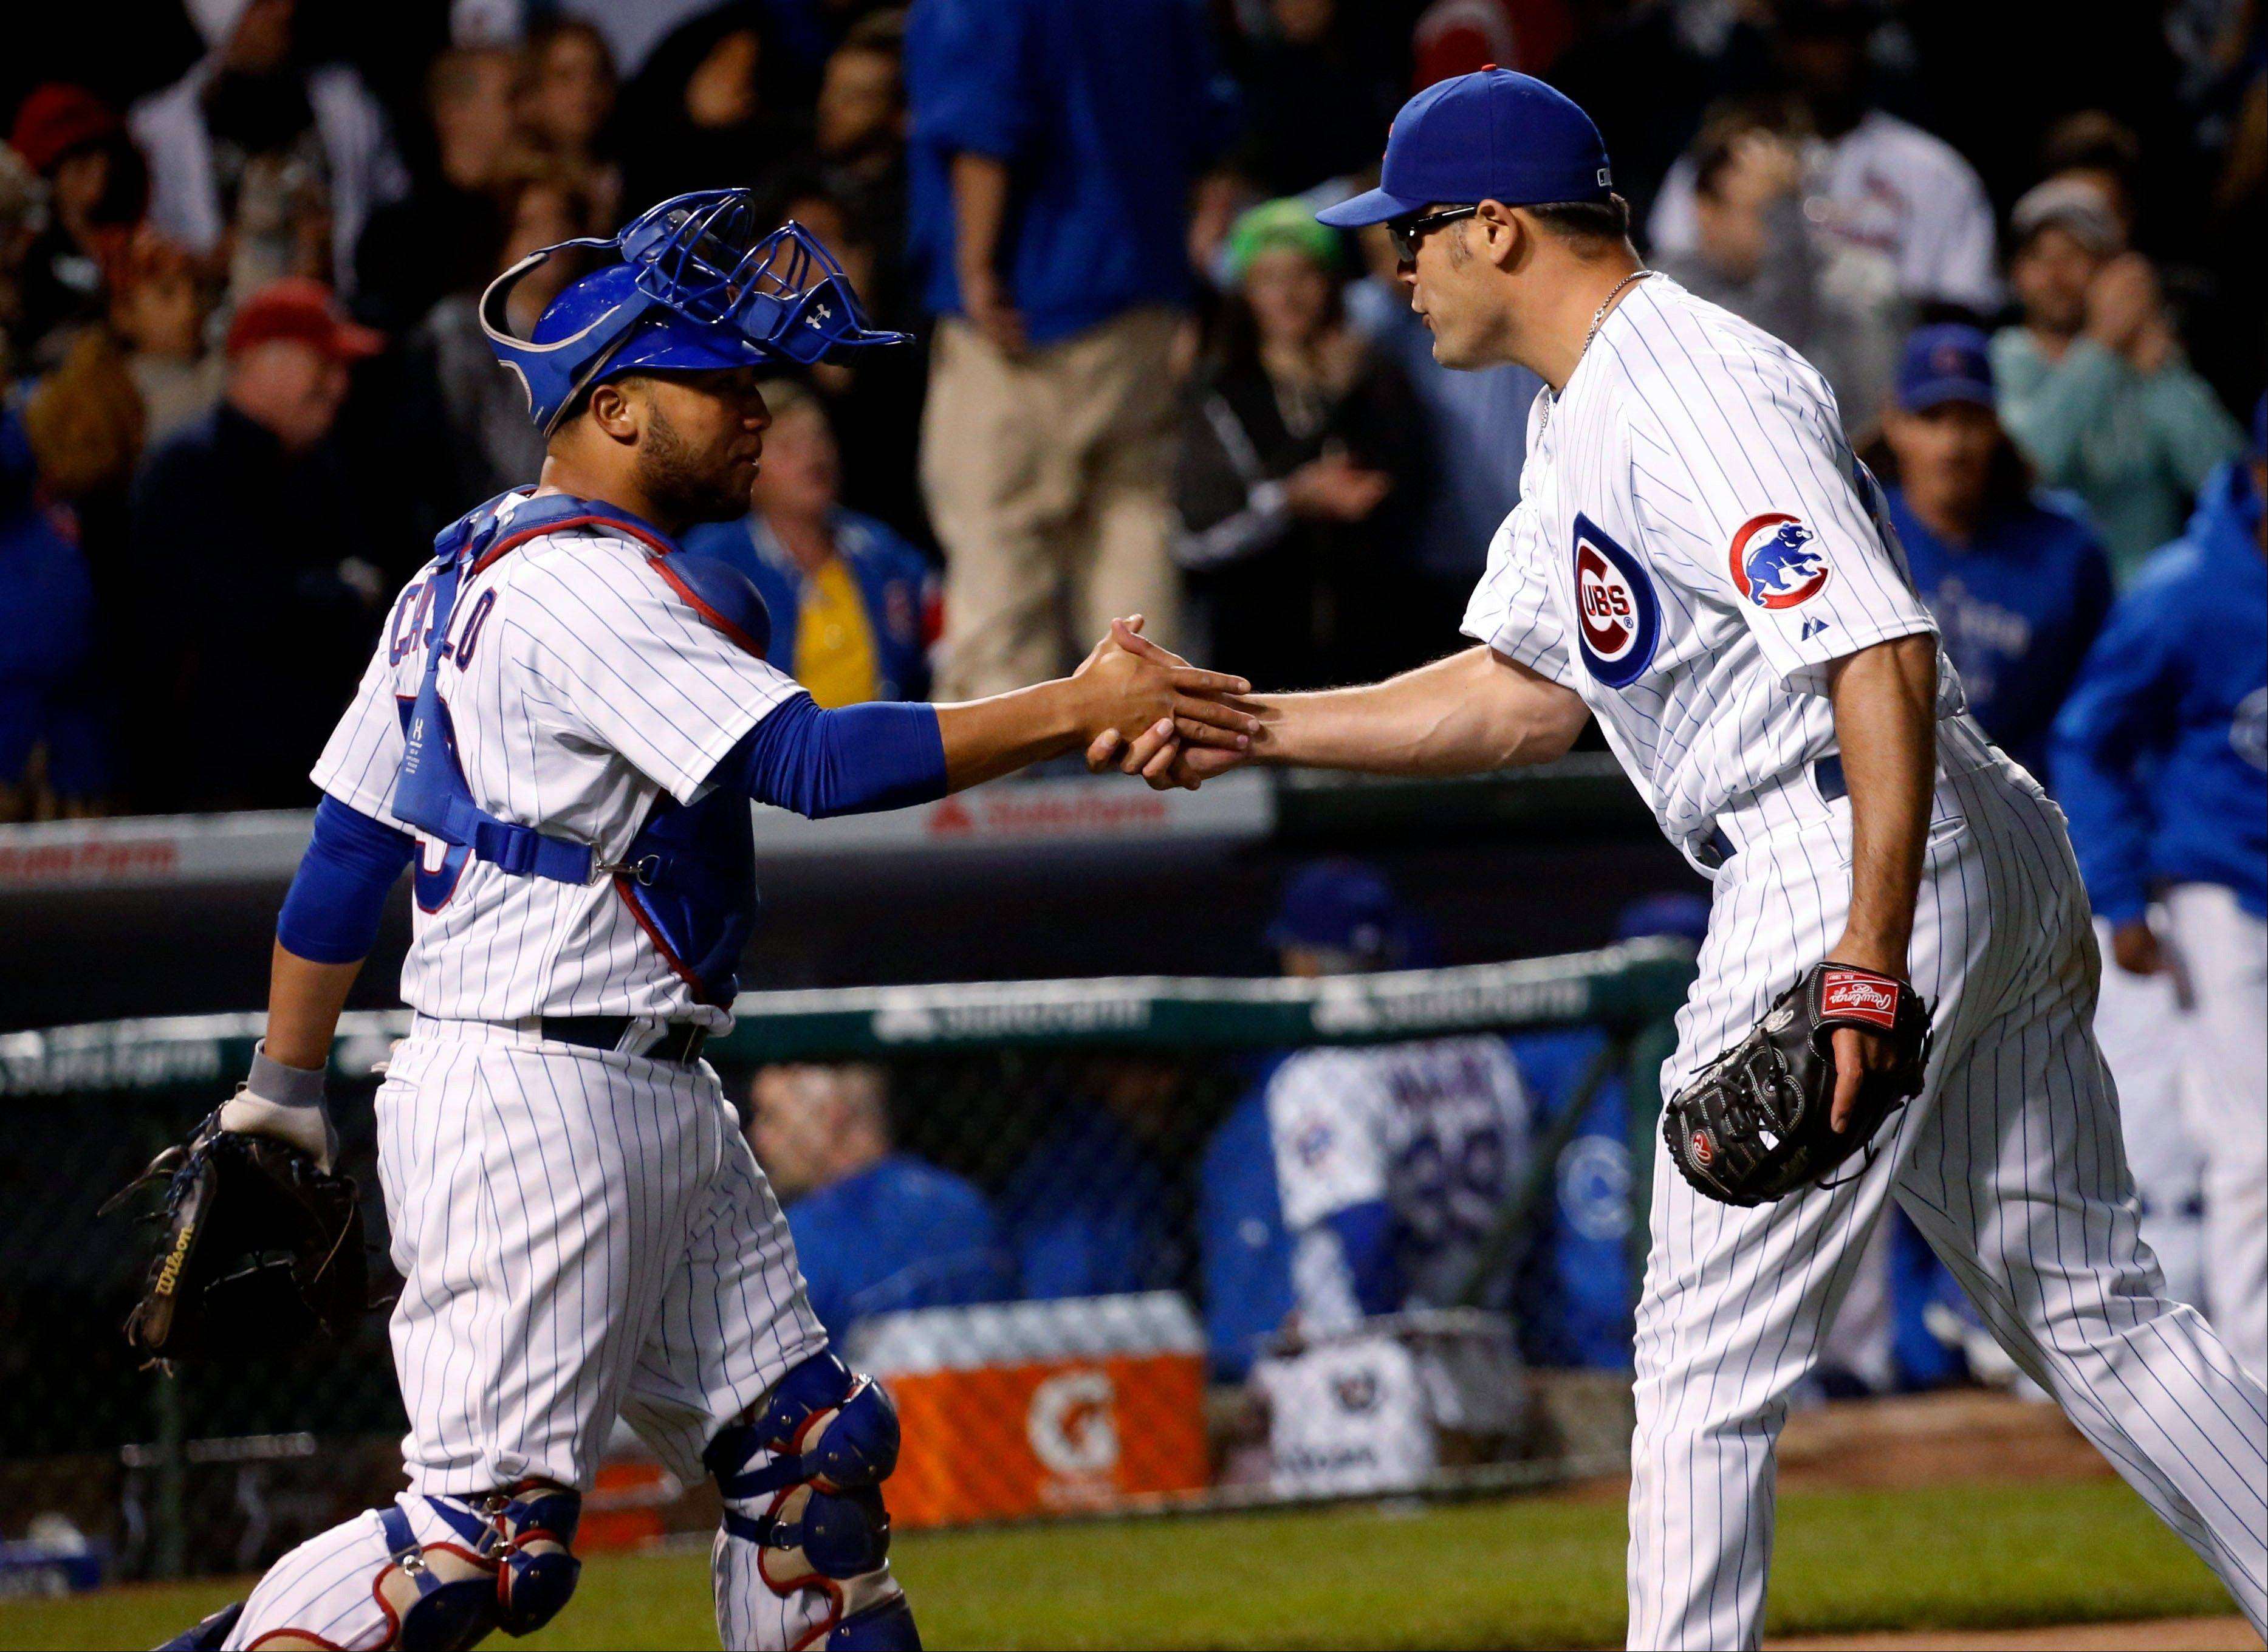 Cubs catcher Welington Castillo, left, celebrates with relief pitcher Kevin Gregg after their 2-1 win over the Cardinals tuesday at Wrigley Field.